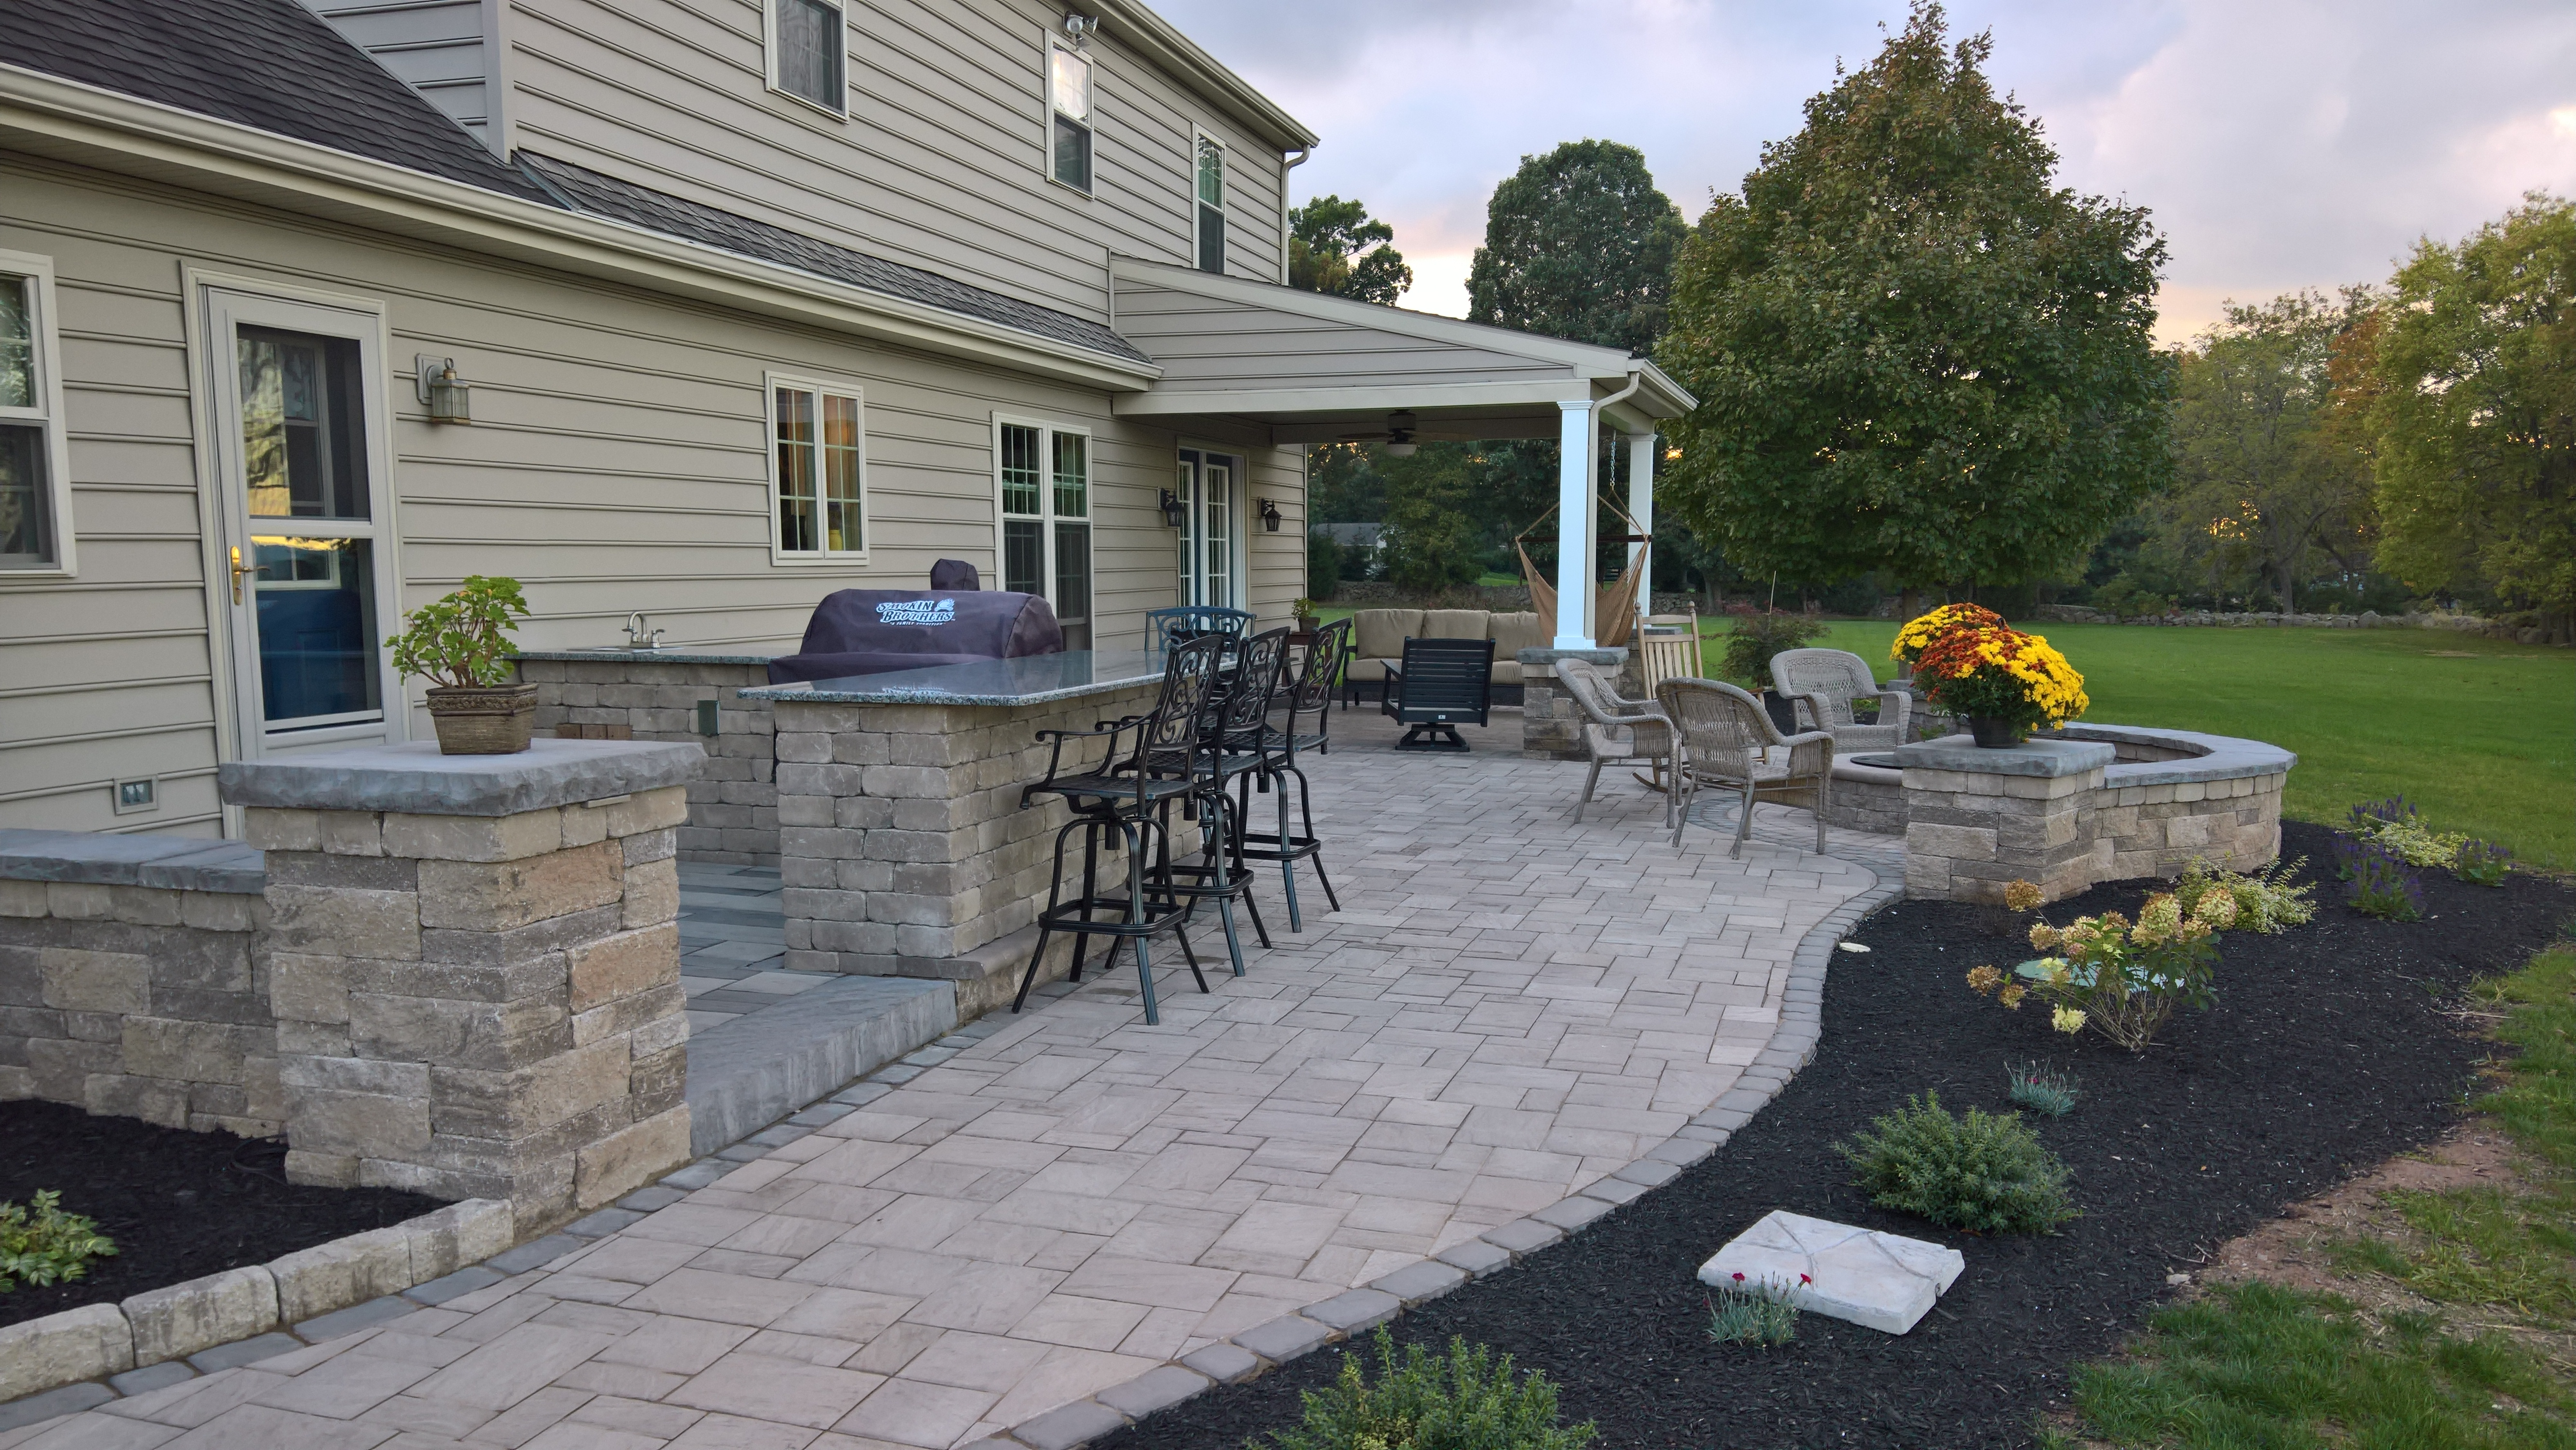 kitchen build patio on me pin made built backyard diy out experience no turned with what awesome this guy so that decided in his to a